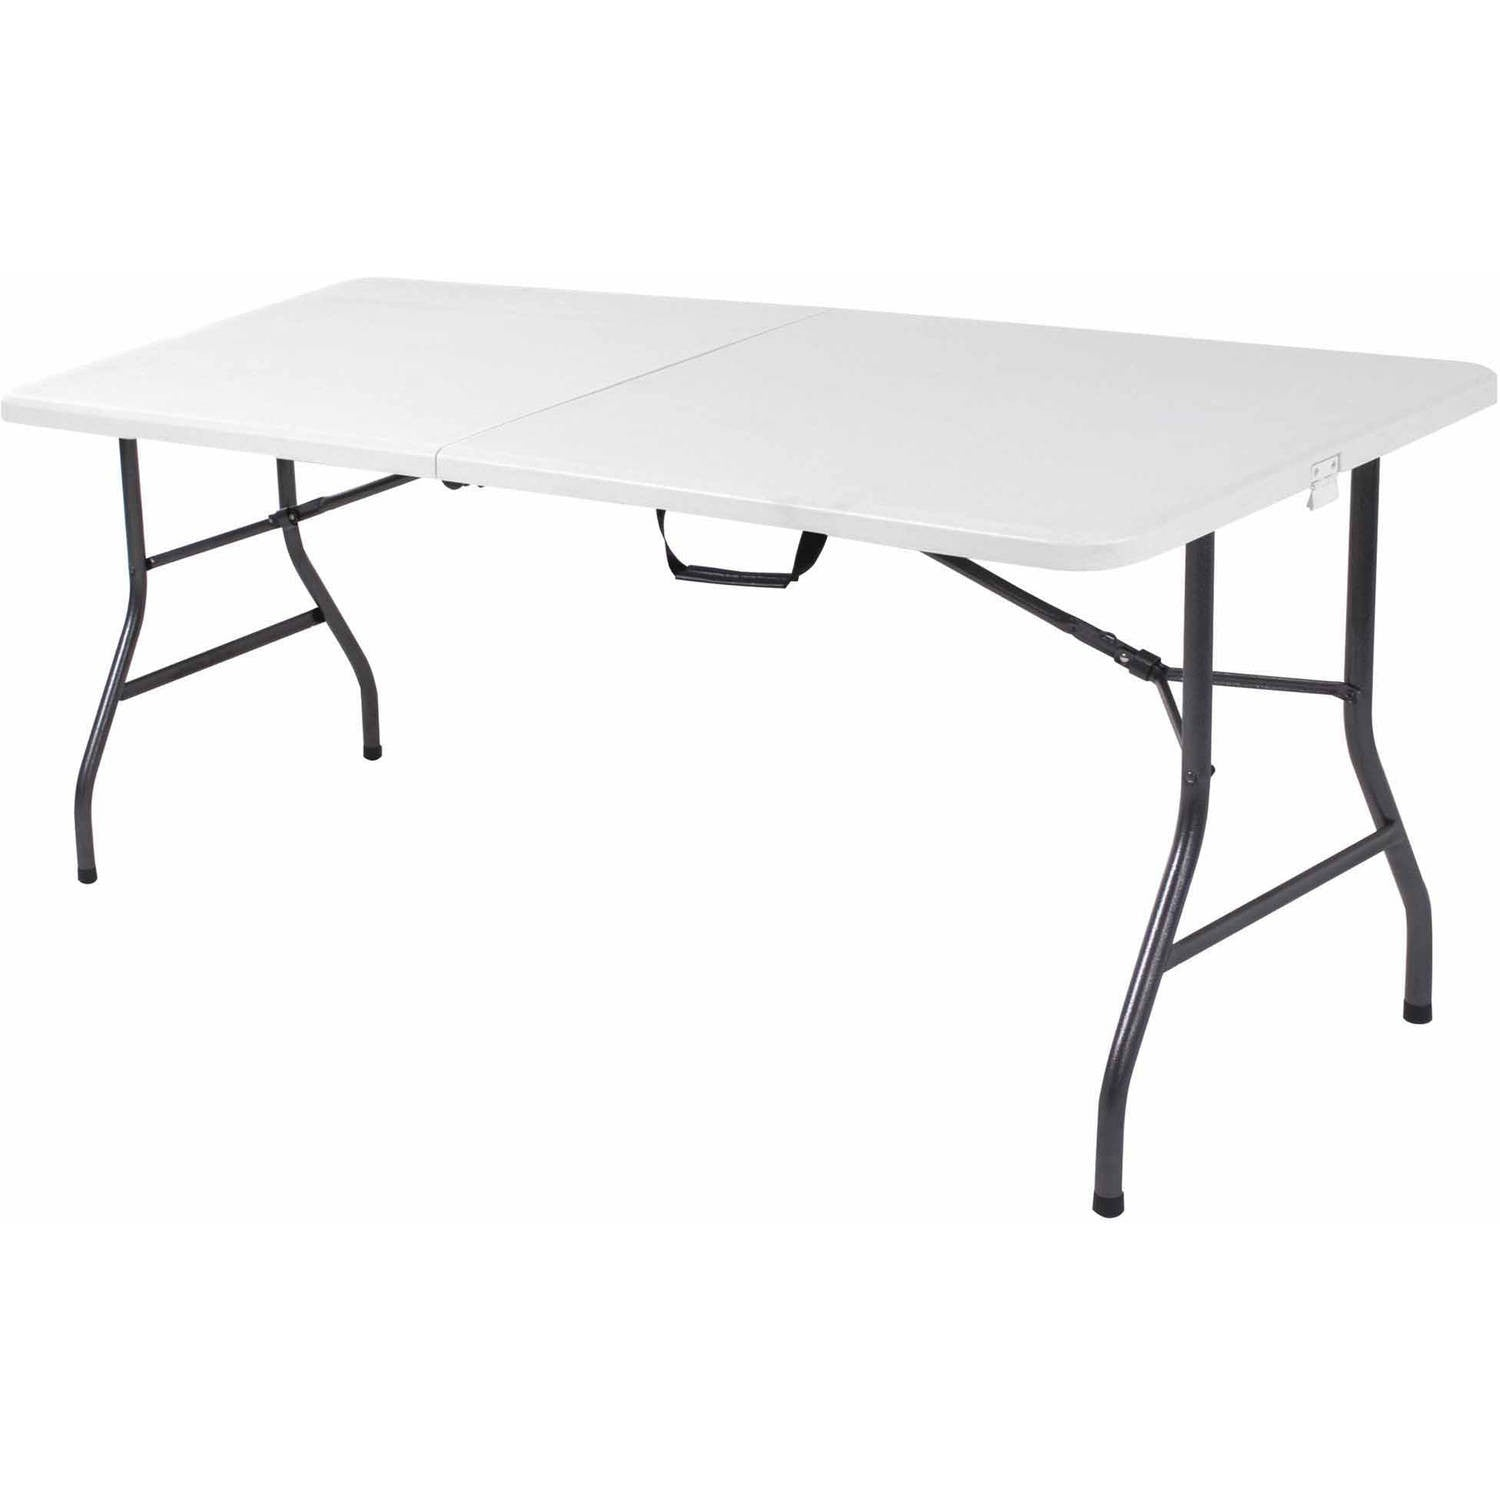 Plastic Top Tailgate Tables. White Plastic Tailgate Table